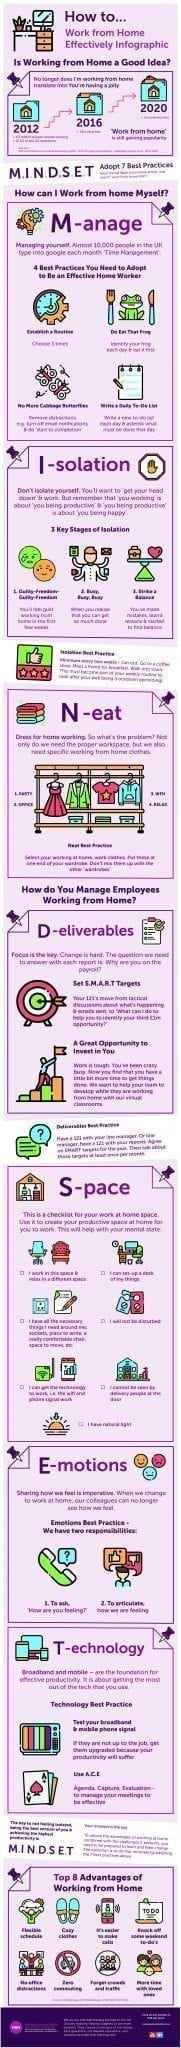 How to work from home efficiently infographic by MBM